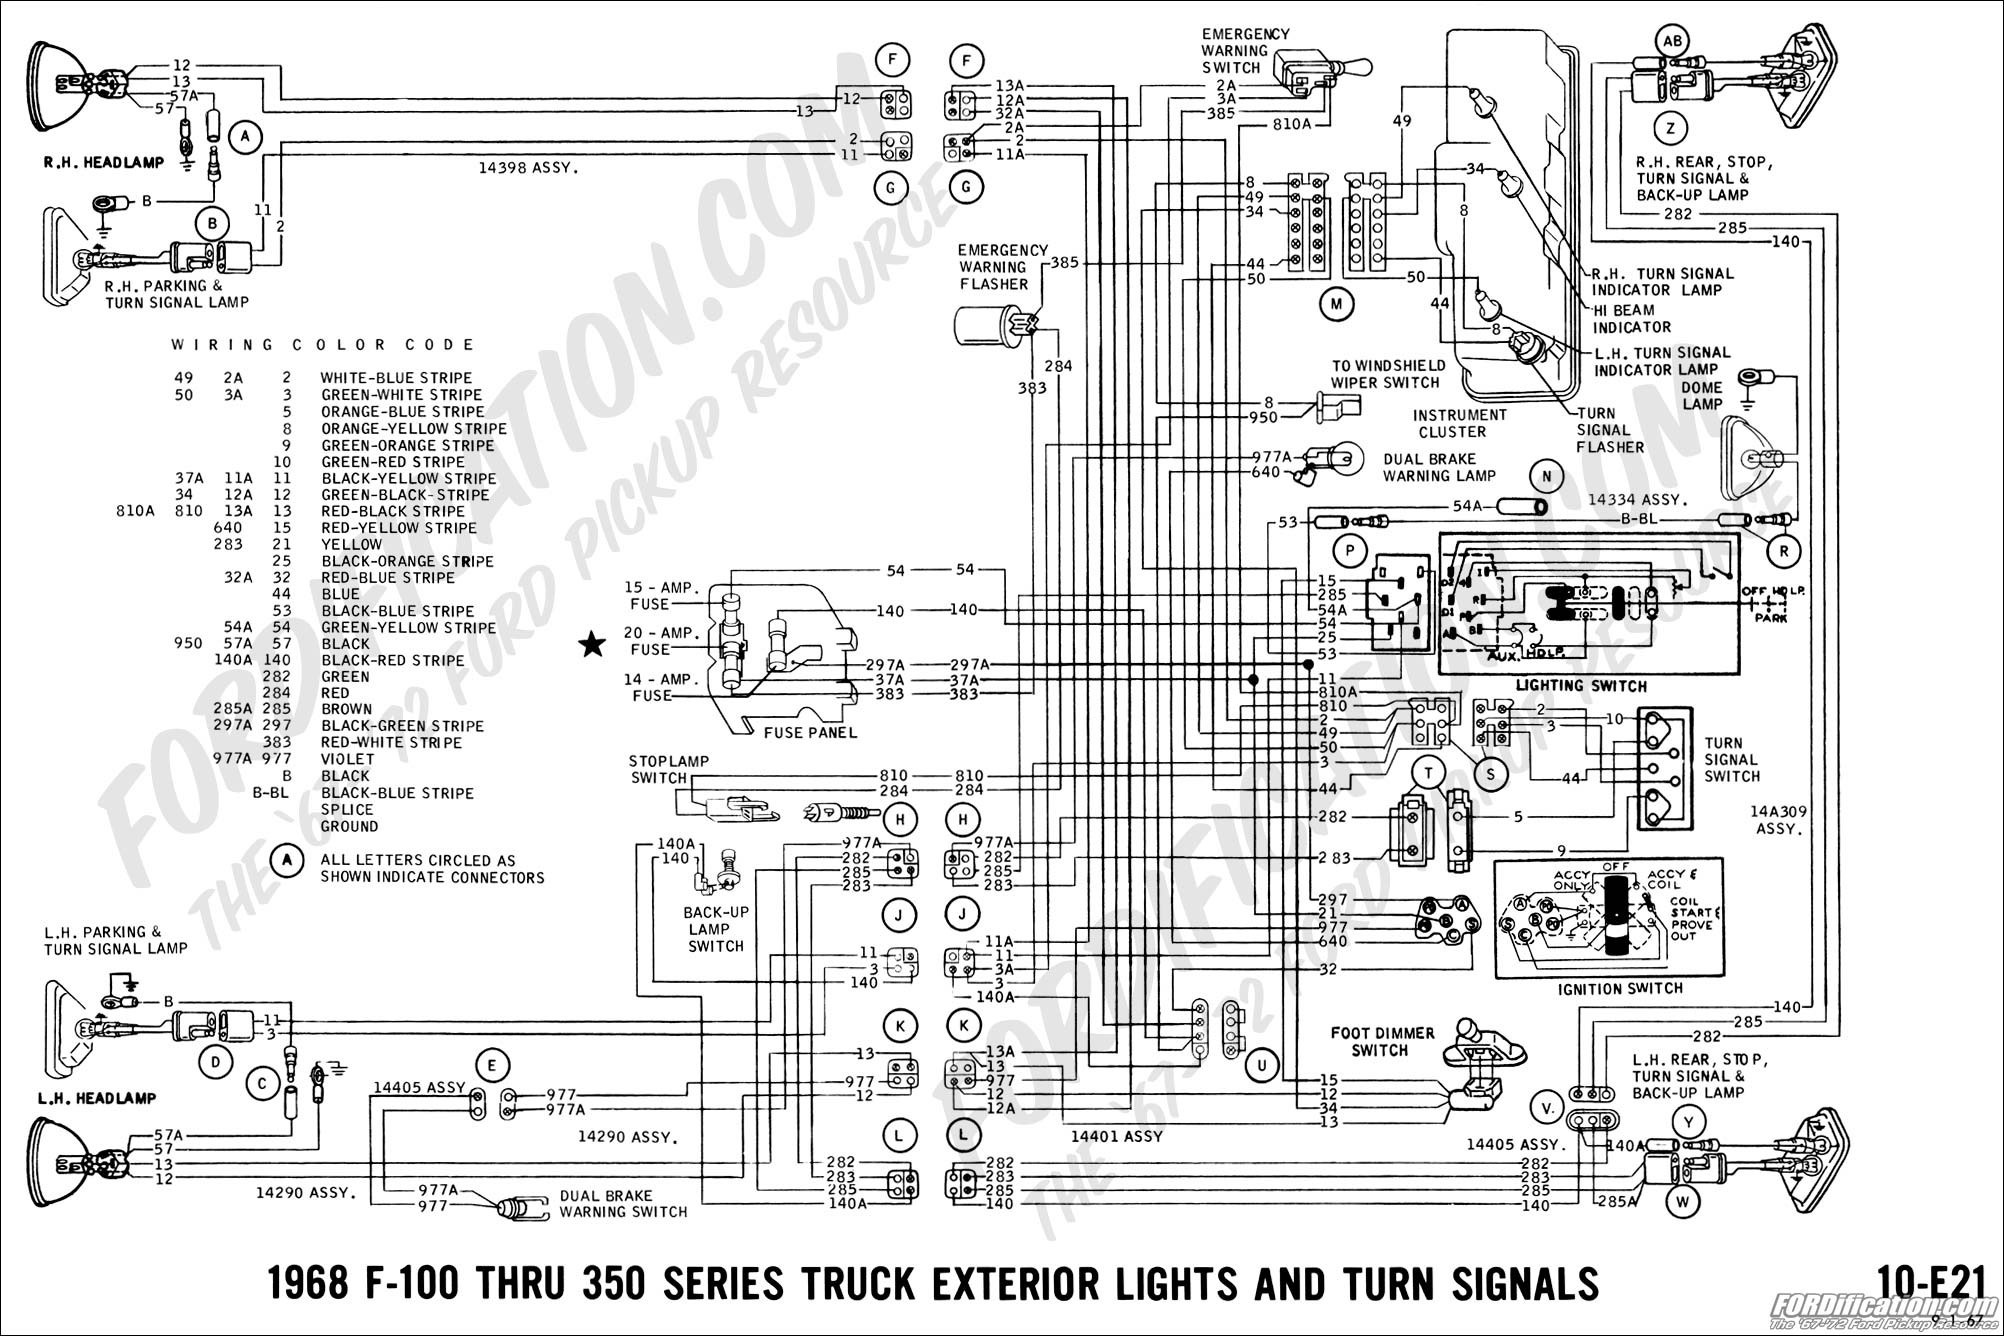 Power Converter 6345 Wiring Diagram 1522 Volvo Vnl Truck Wiring Diagrams Turn Signal Of Power Converter 6345 Wiring Diagram Wn 2508] Magnetek 7345 Power Converter Wiring Diagram